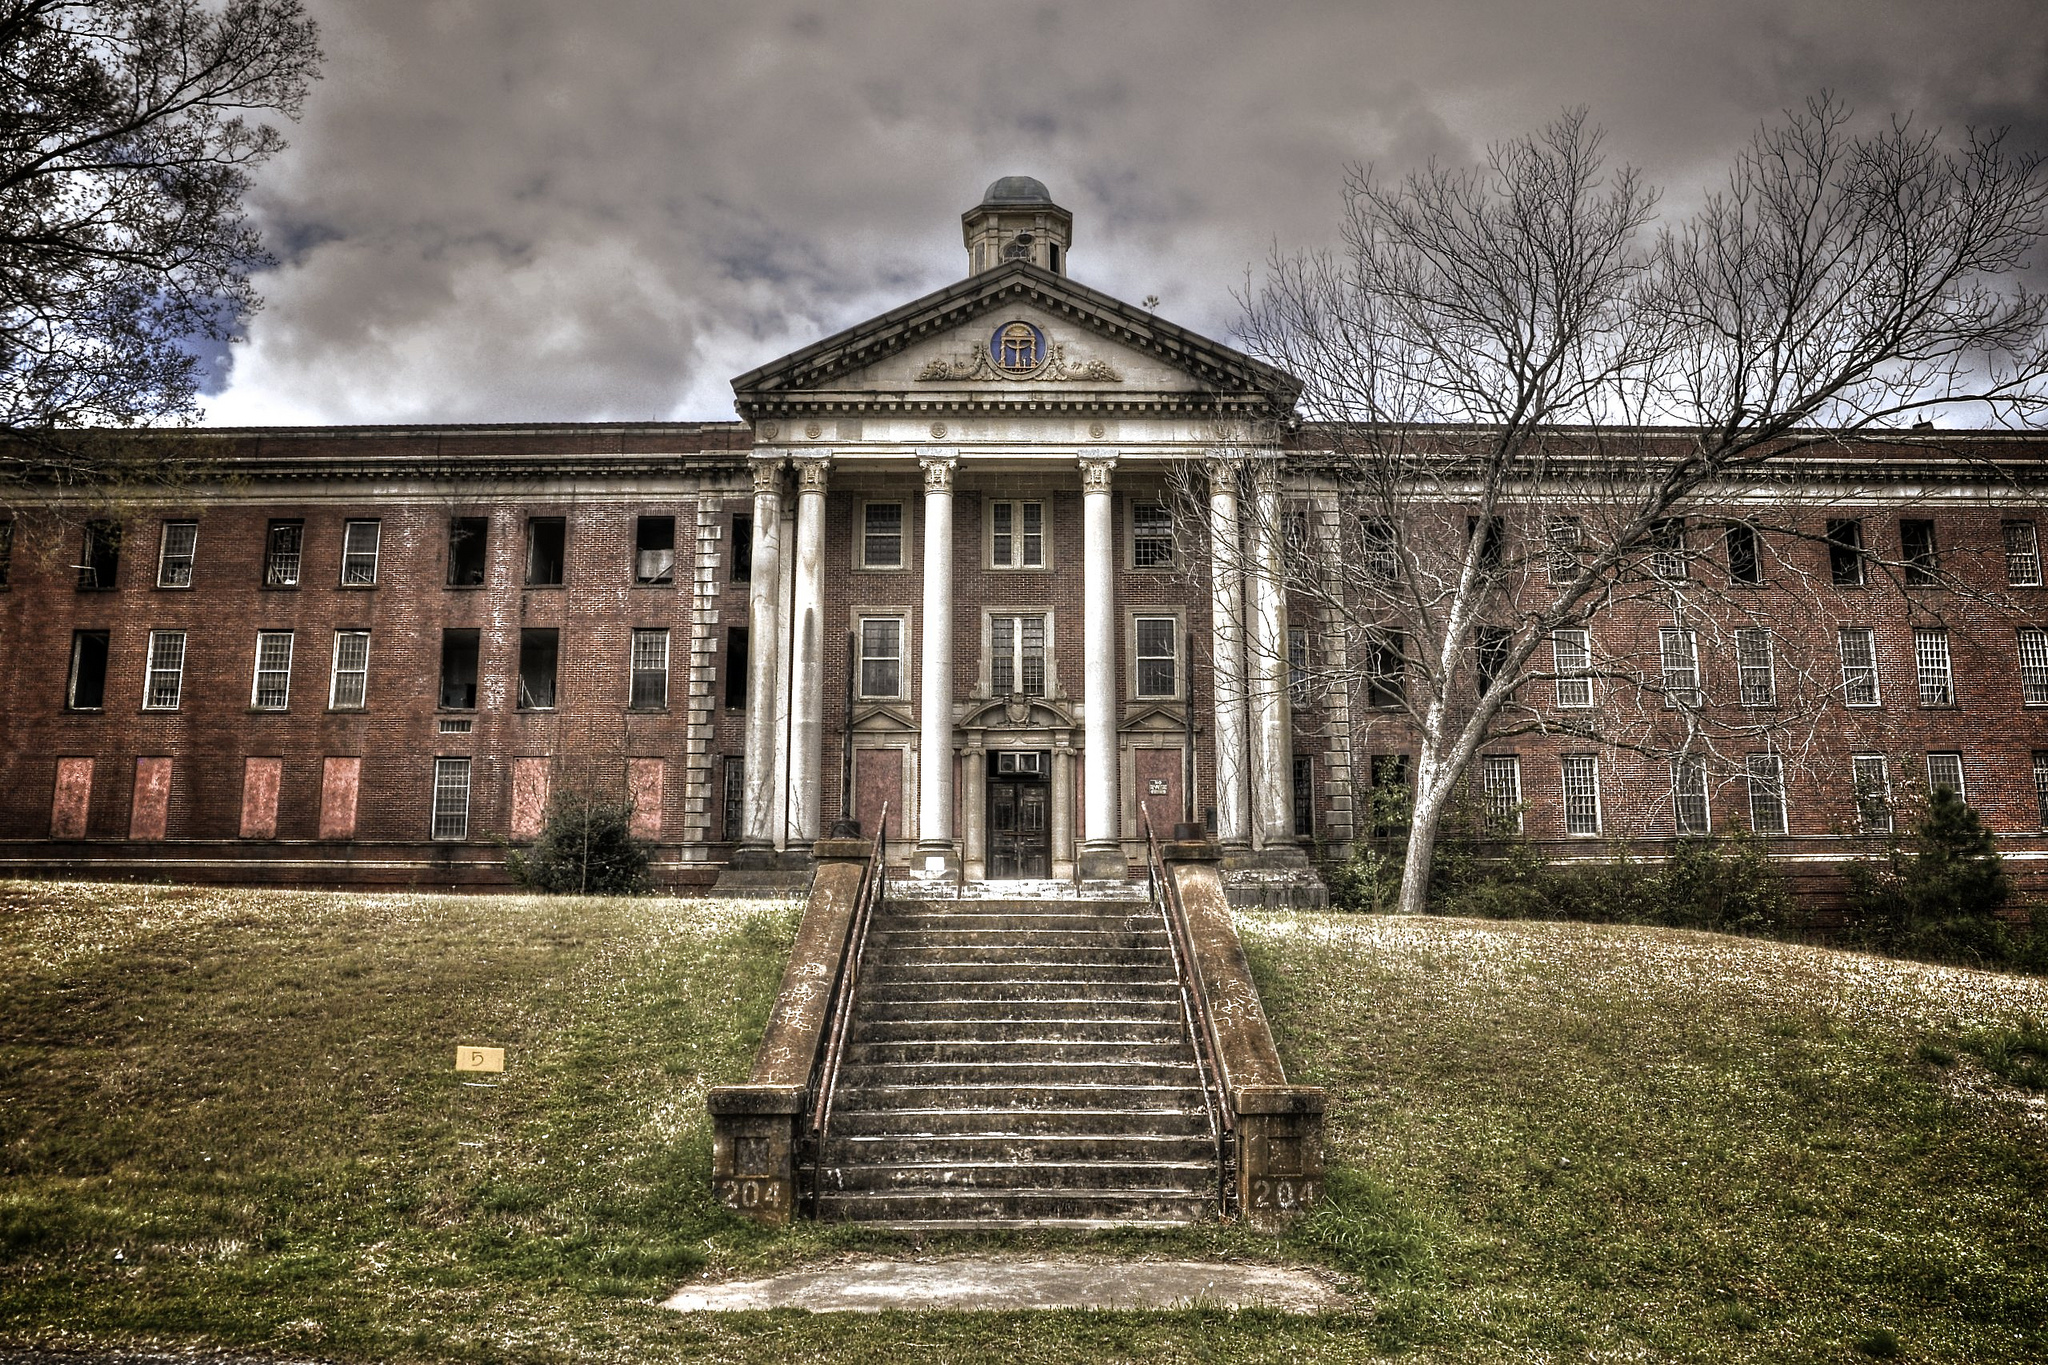 Step Inside This Forbidden Decaying Hospital In Georgia